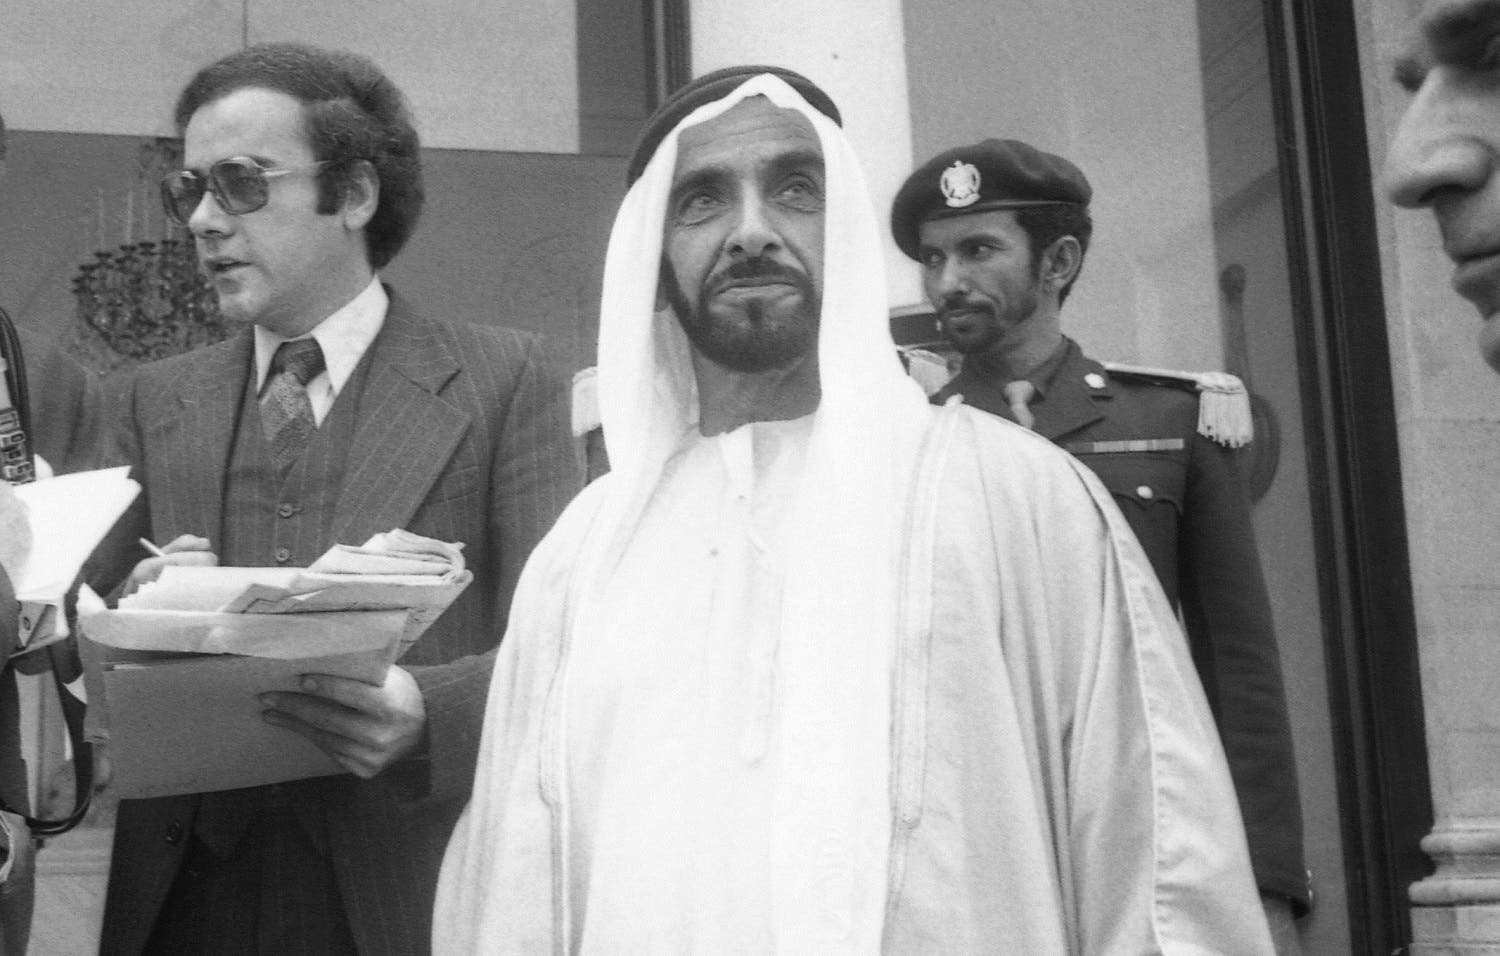 Late Sheikh Zayed bin Sultan Al Nahyan at the Elysee Palace in Paris, France on July 4, 1975. (AP)